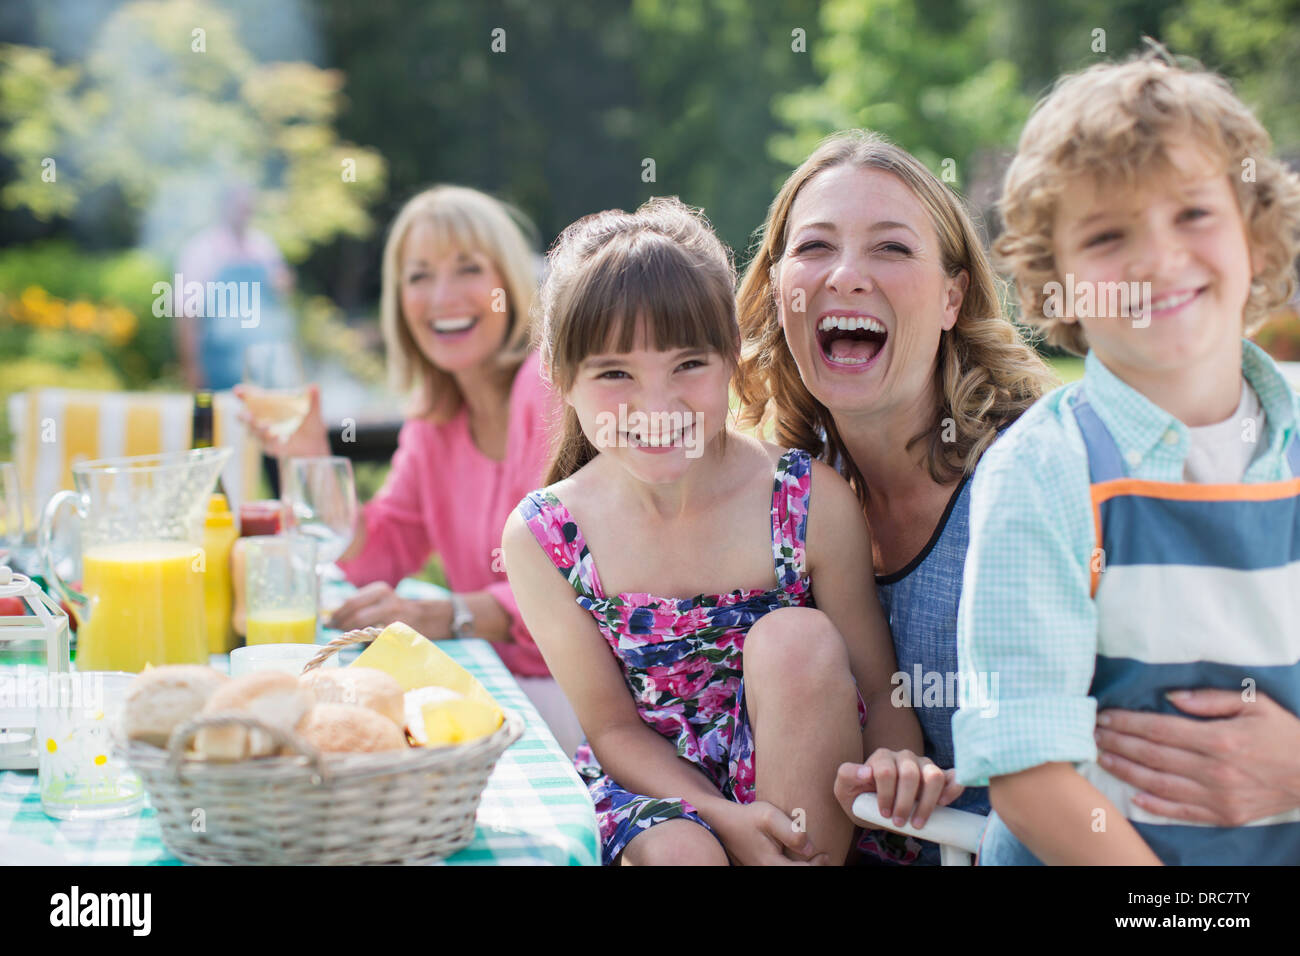 Family at table in backyard - Stock Image